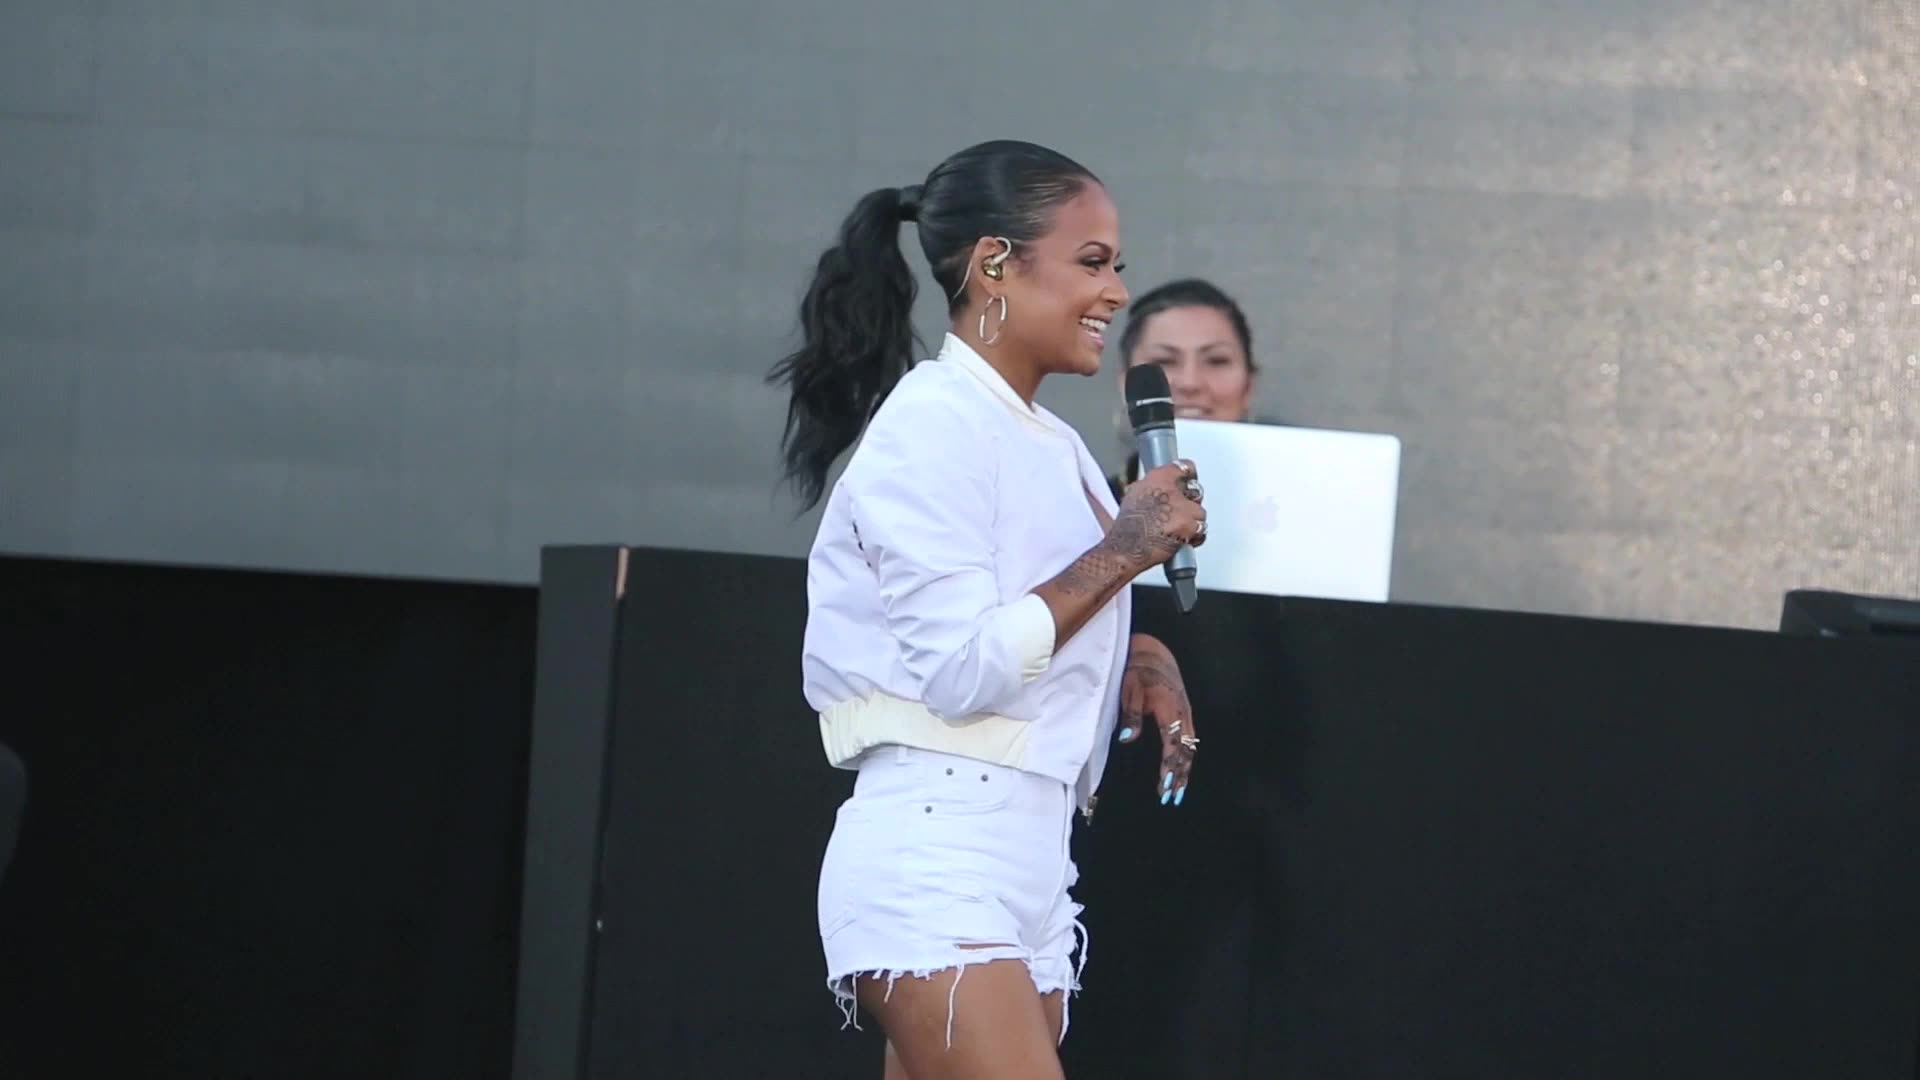 Christina Milian's Twerking Steals The Show At Her Block Party